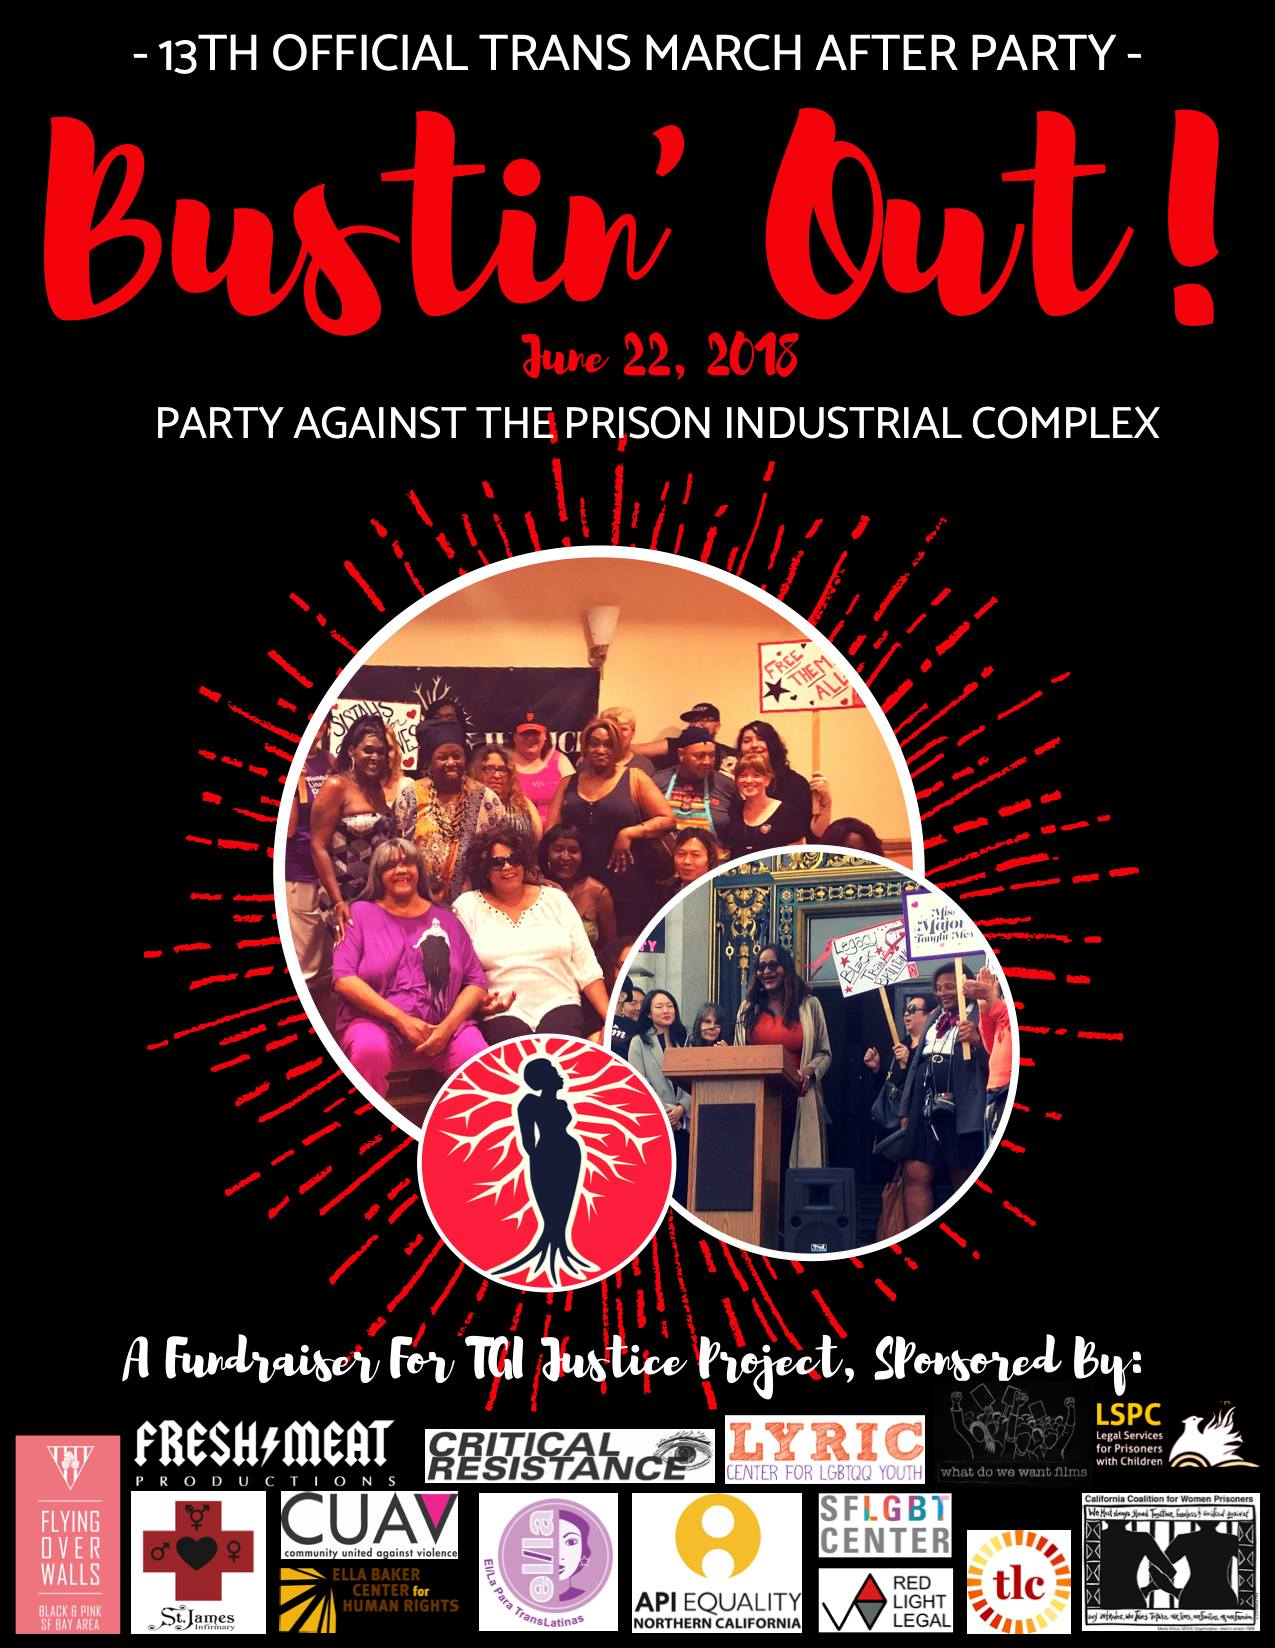 Bustin' Out - Official Trans March After Party